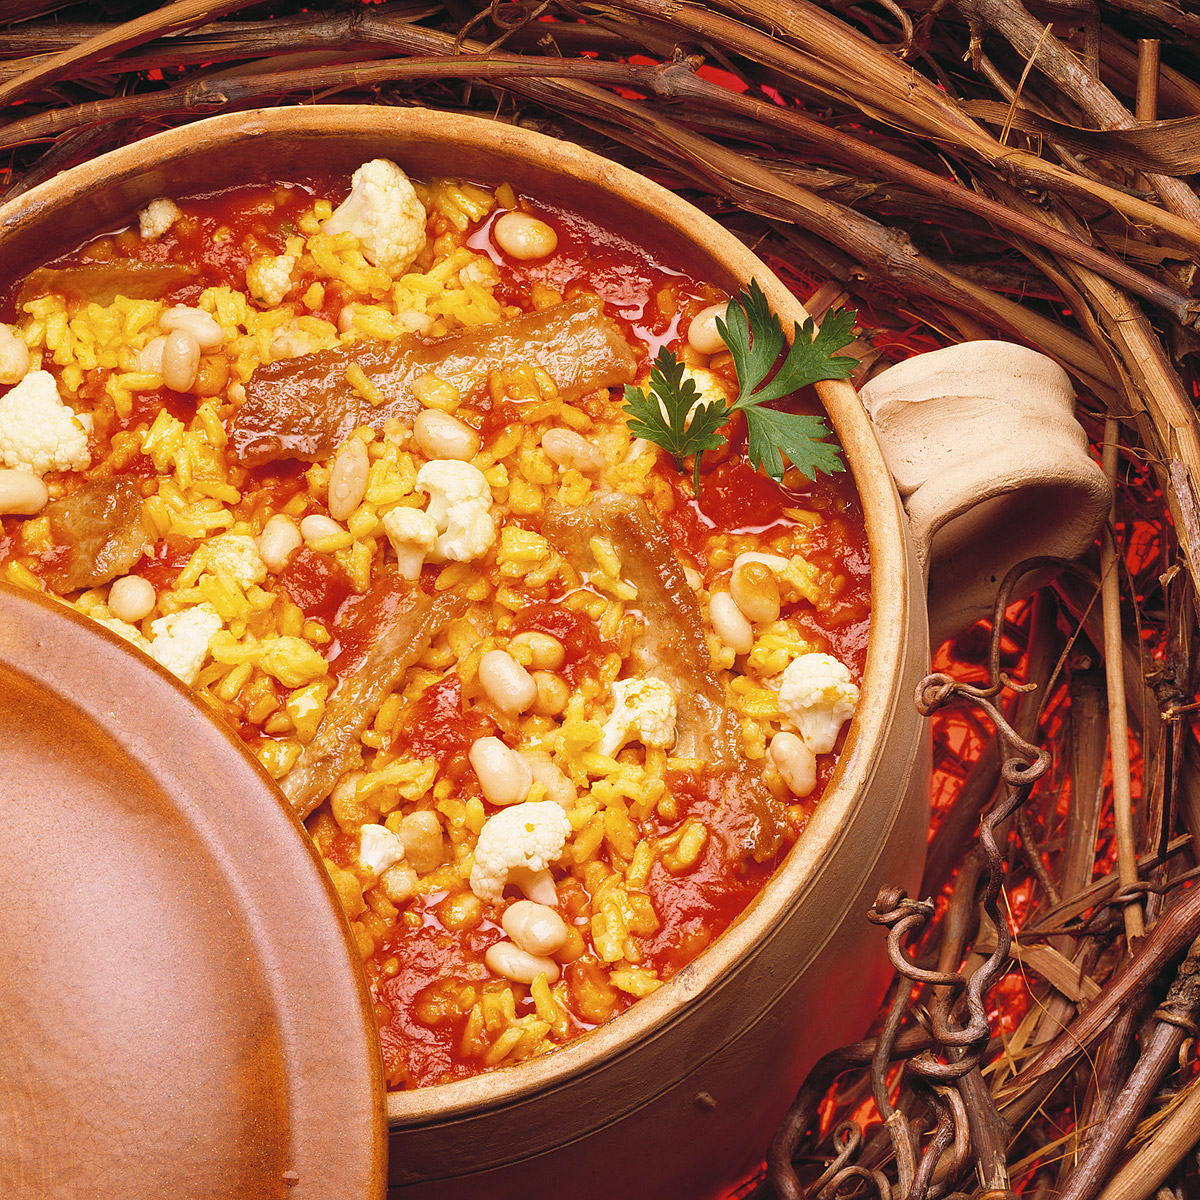 Arroz caldoso con costillas adobadas